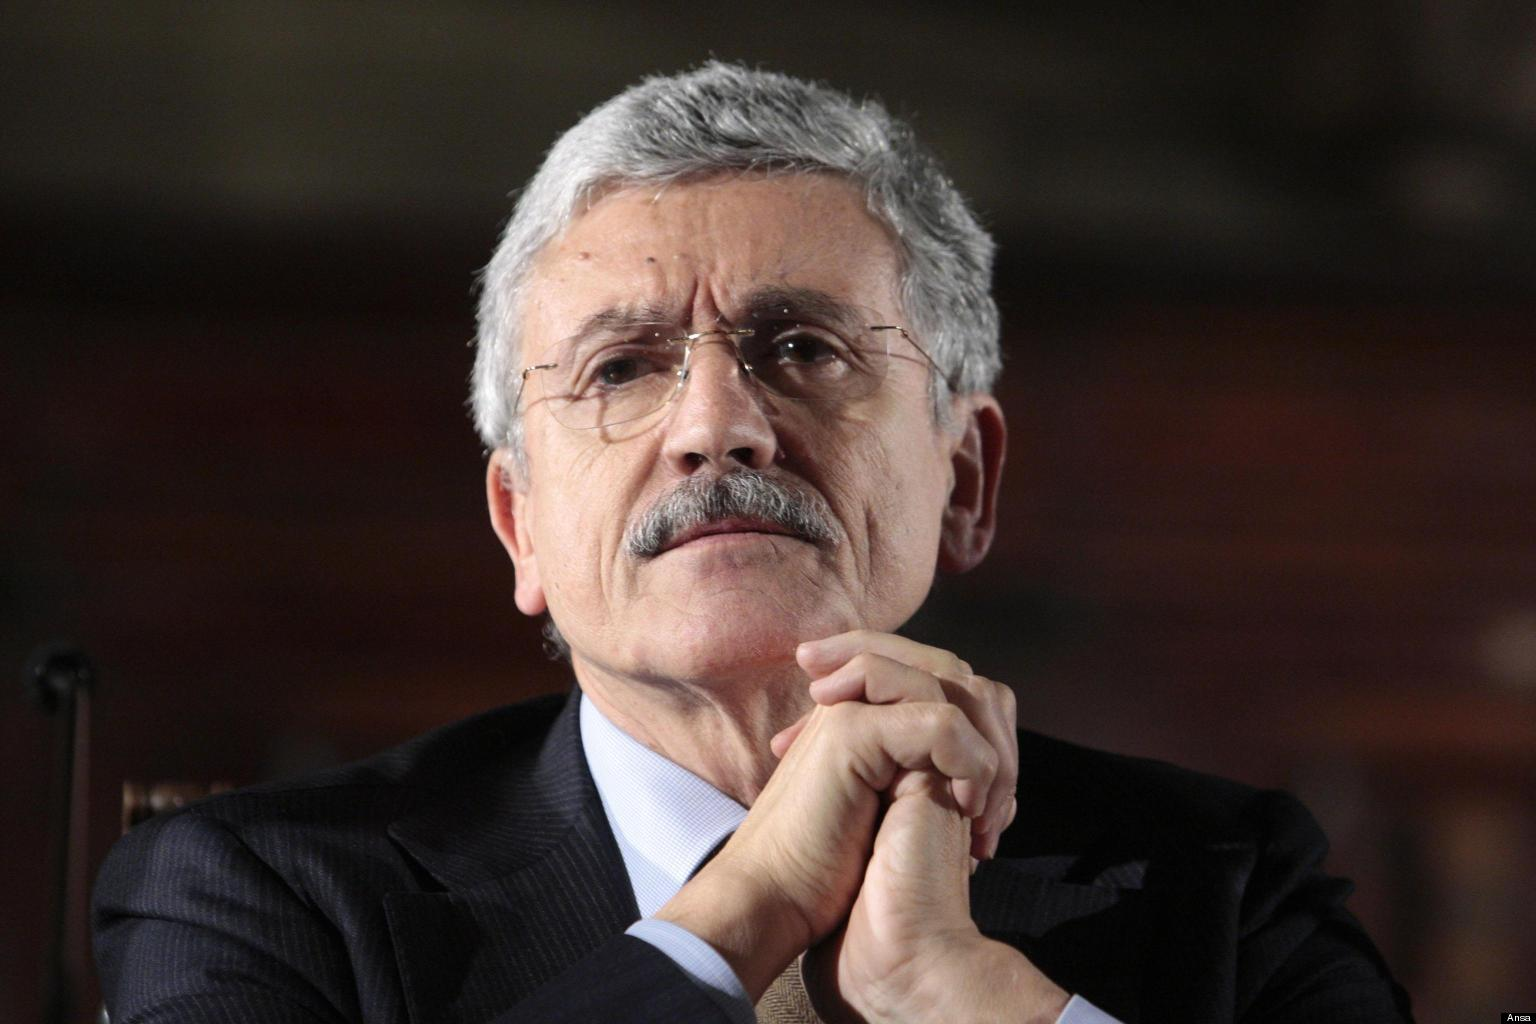 Massimo D'Alema: There is need for a new, creative solution for Greece